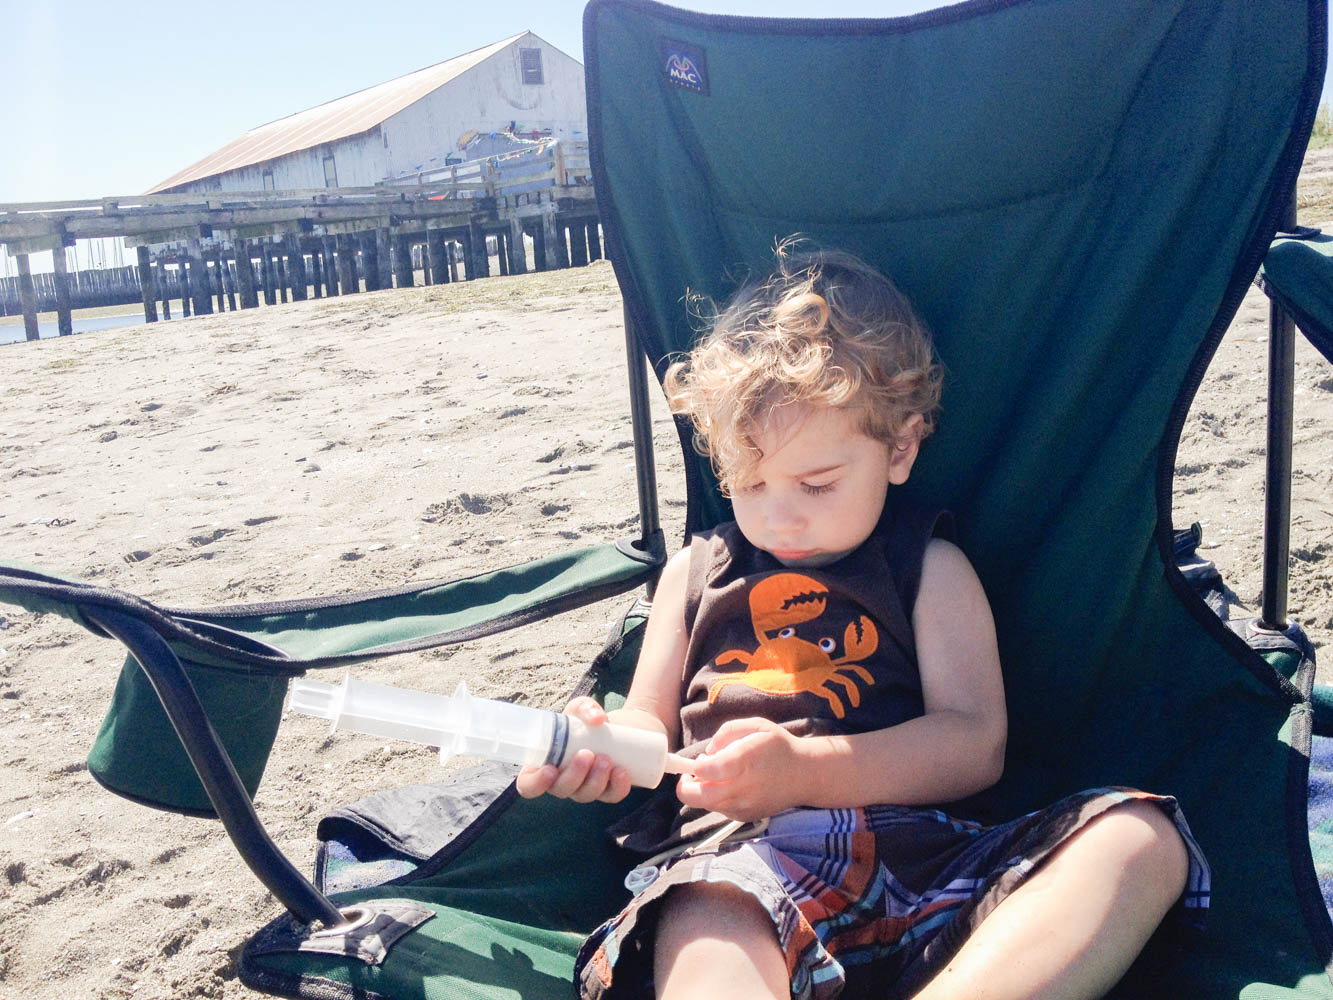 Curly haired toddler being fed through g-tube on beach.